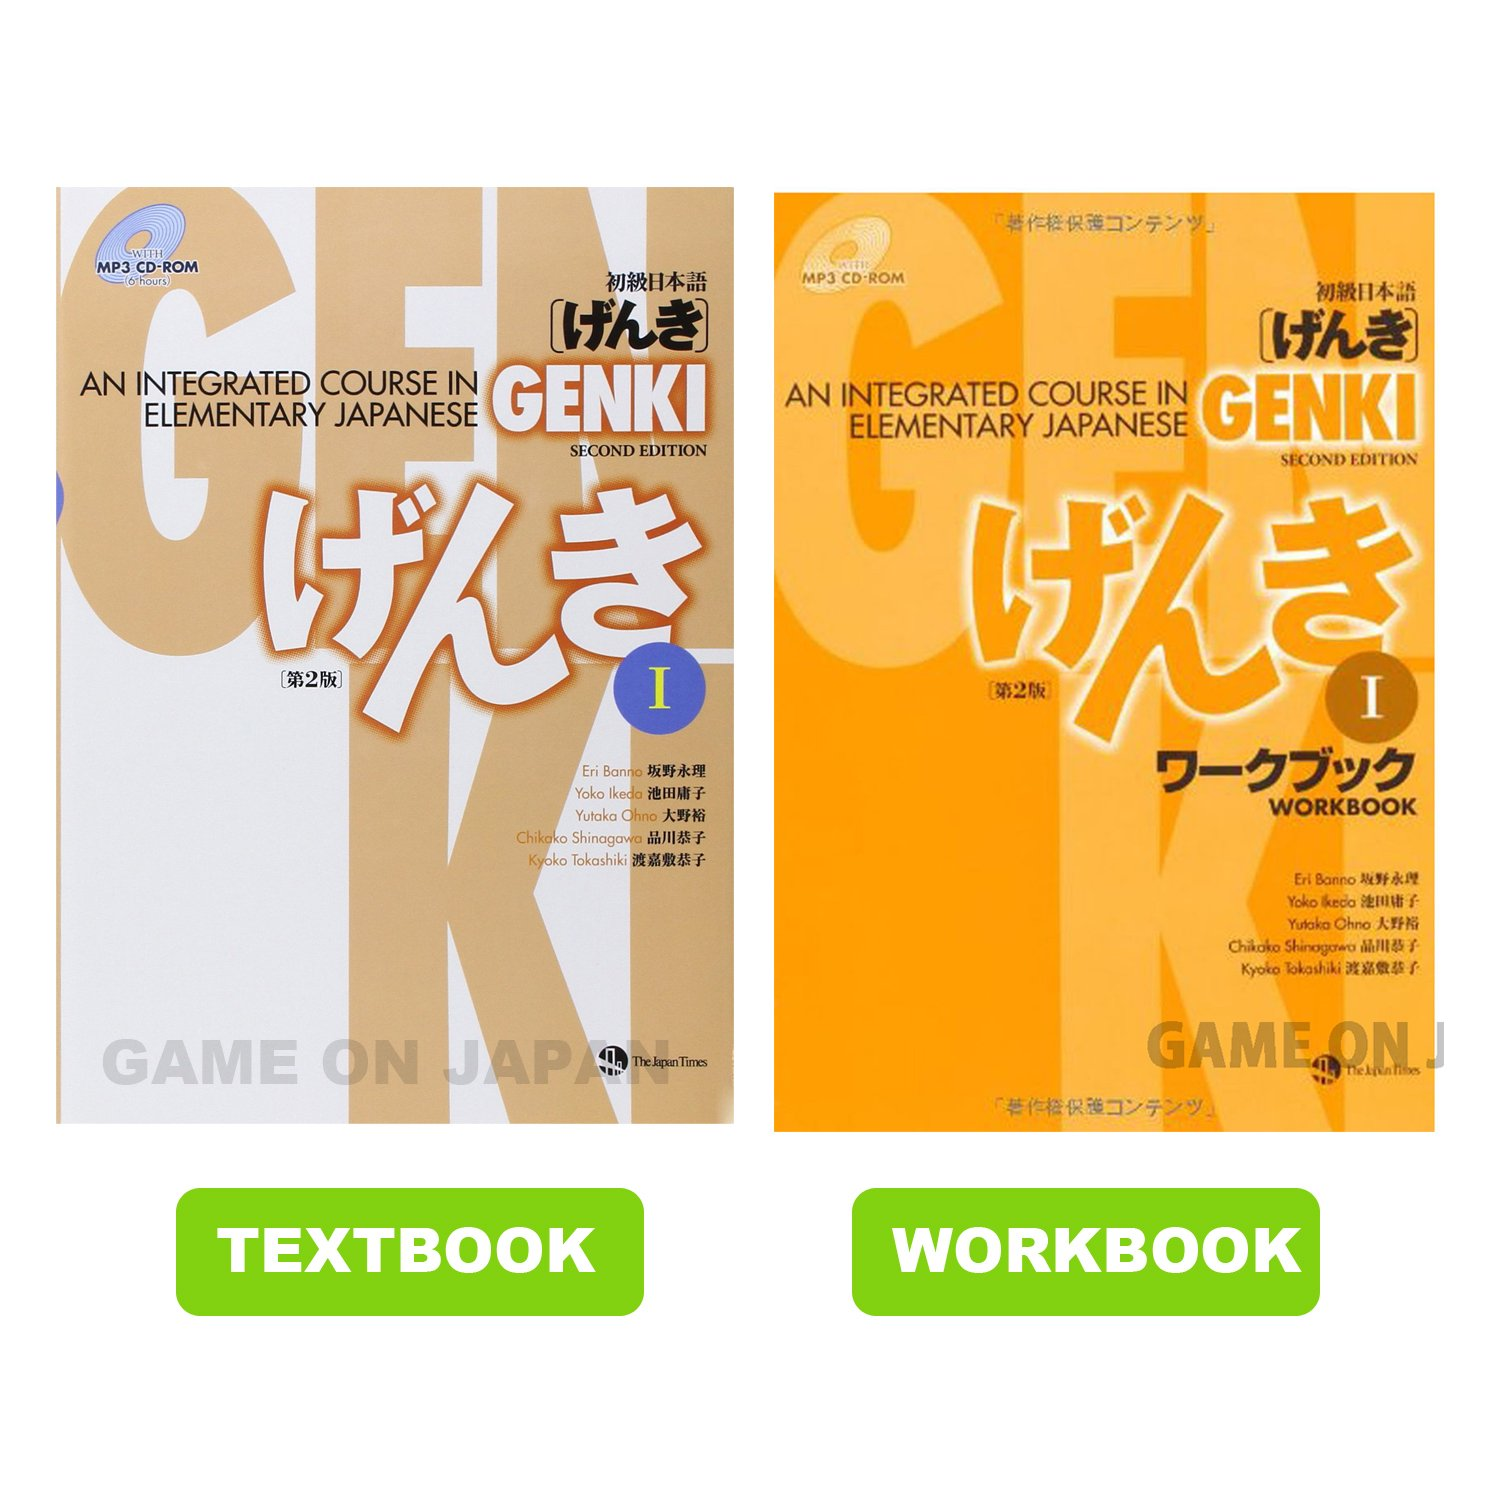 Genki 1 Textbook Workbook Answer Key Learn Japanese Elementary new Edition